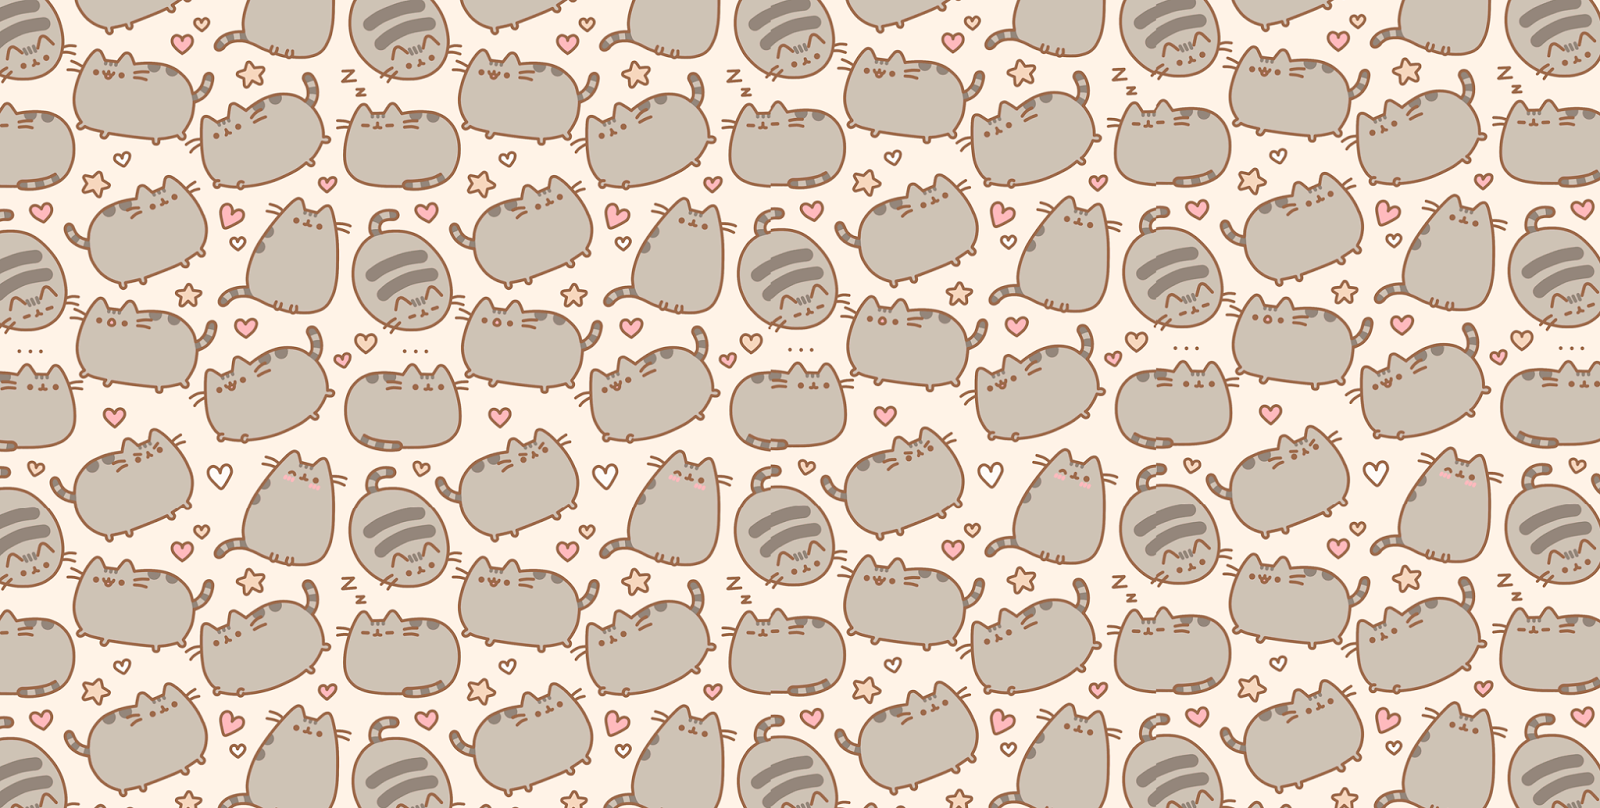 pusheen cat desktop wallpaper wallpapersafari xmas wallpaper